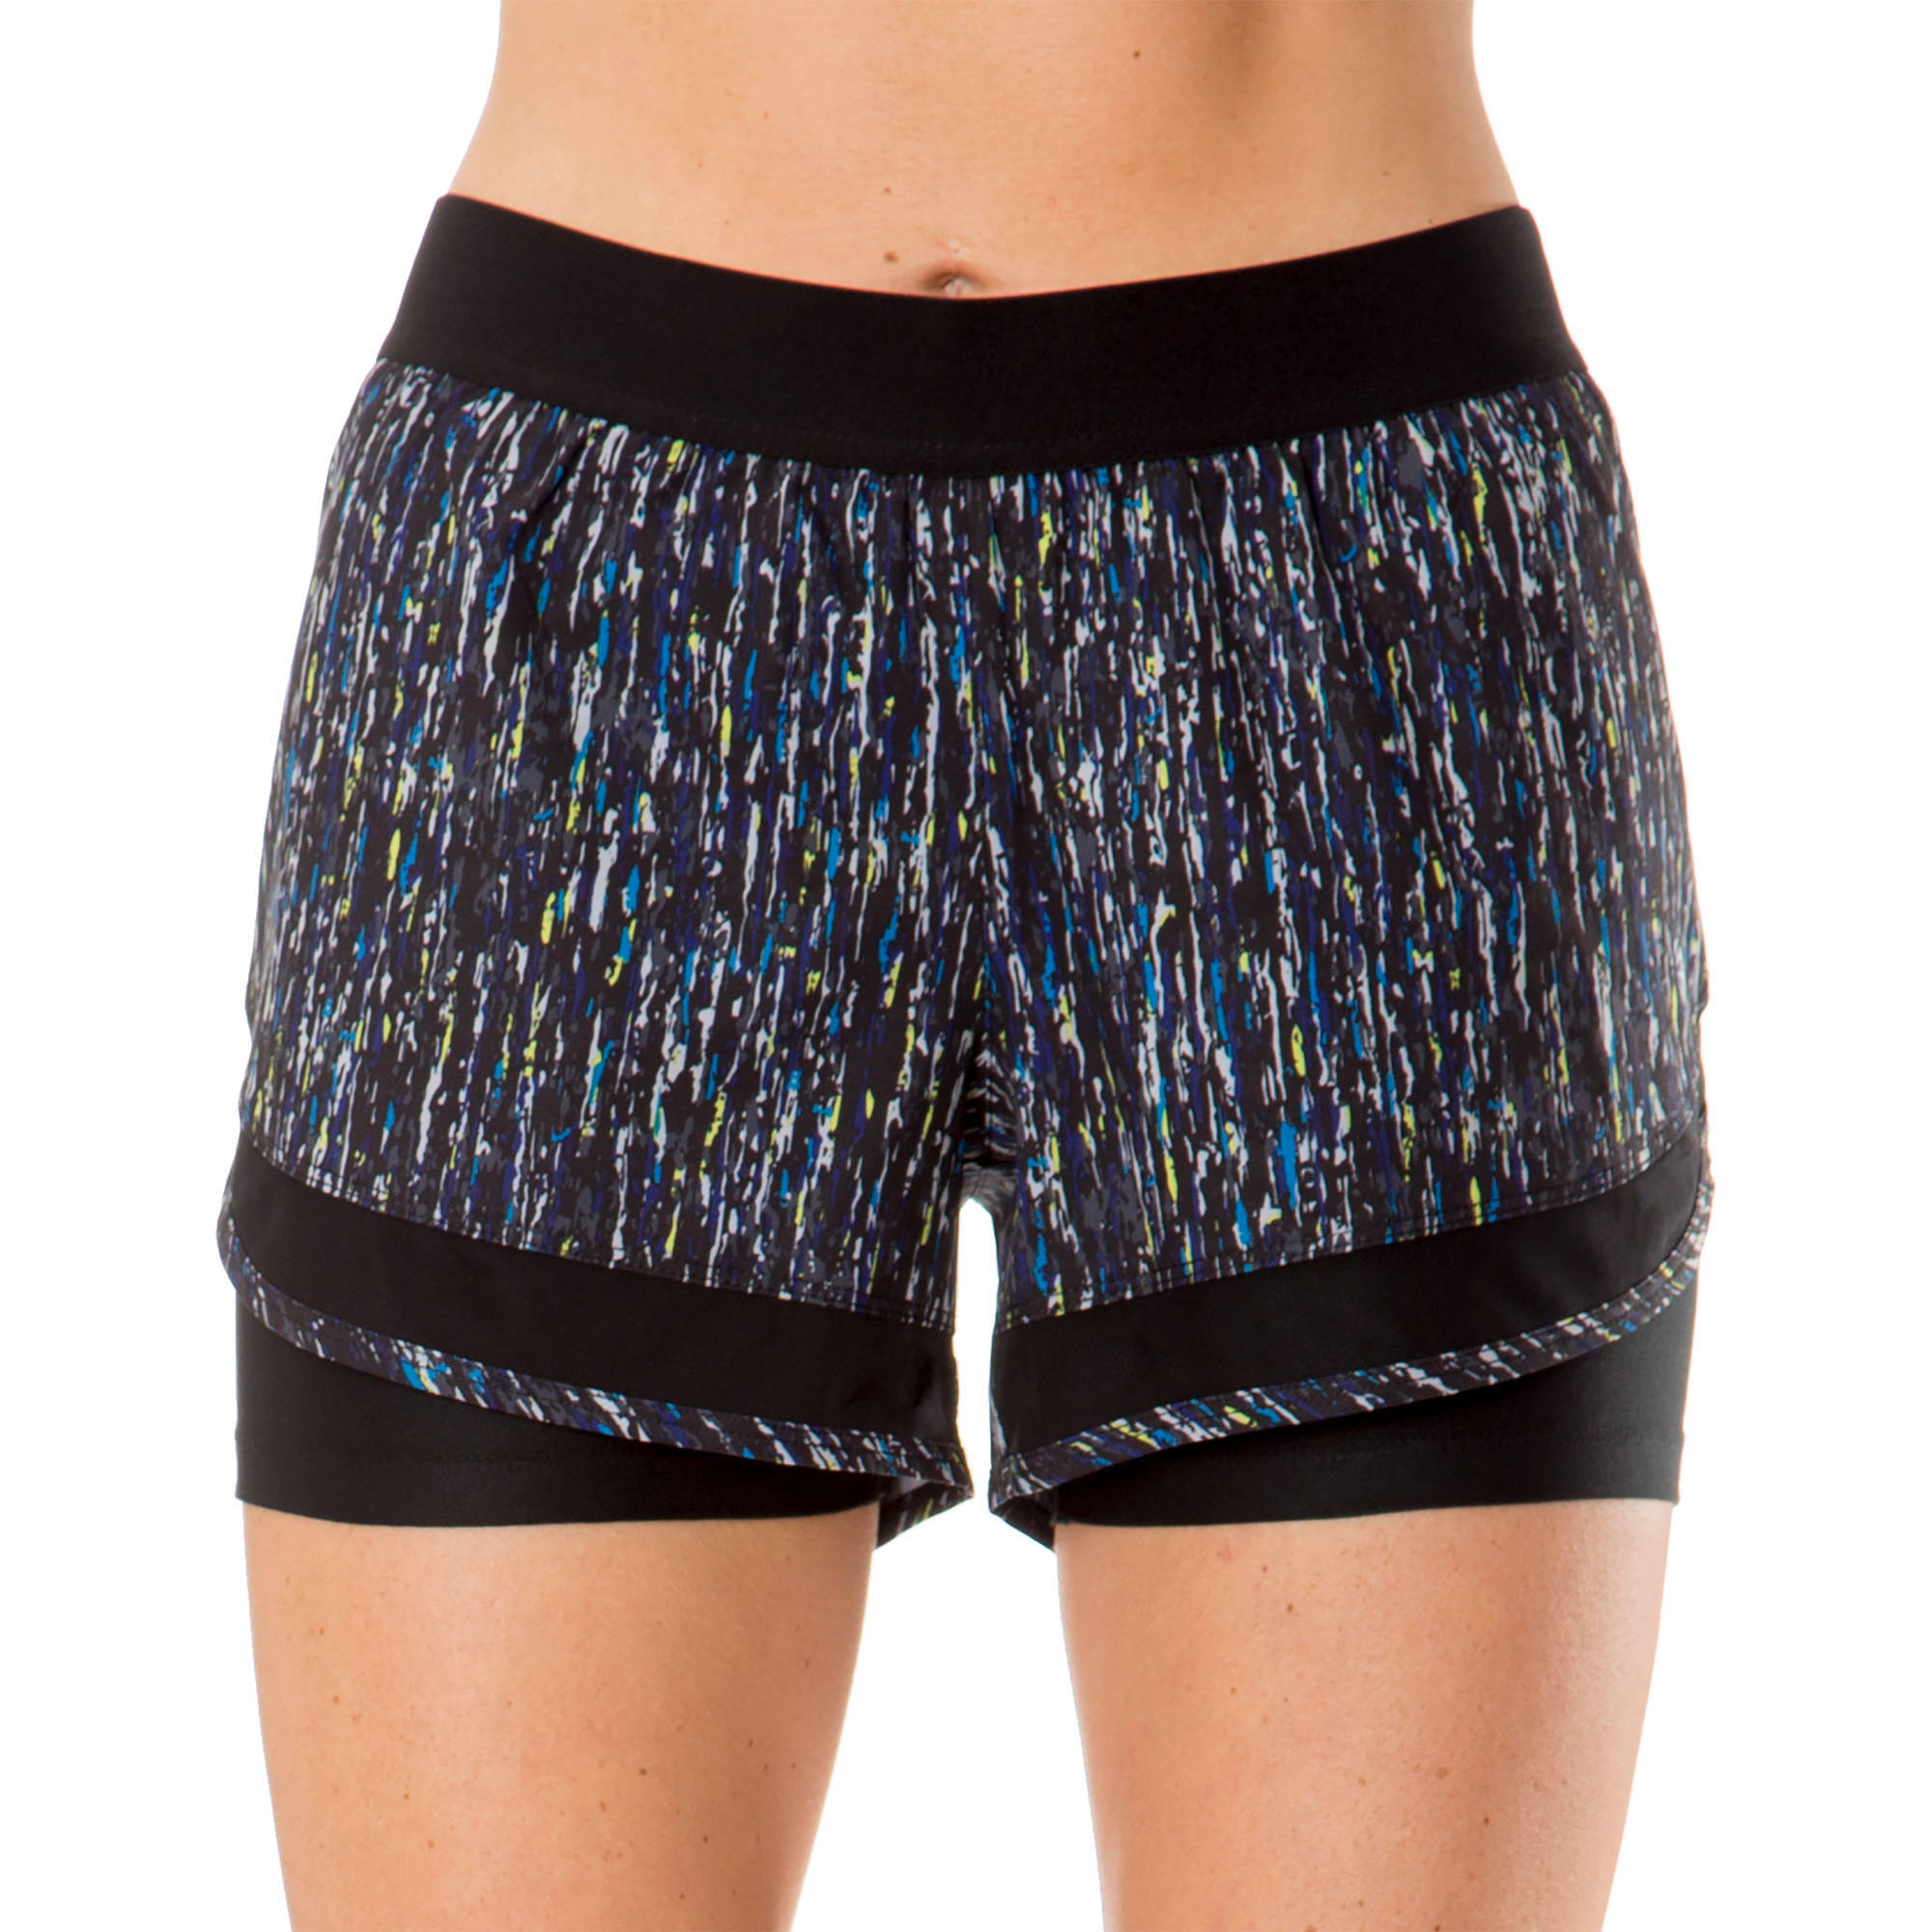 Impact by Jillian Michaels Women's Performance Double-Layer Workout Short With Power-Mesh Lining